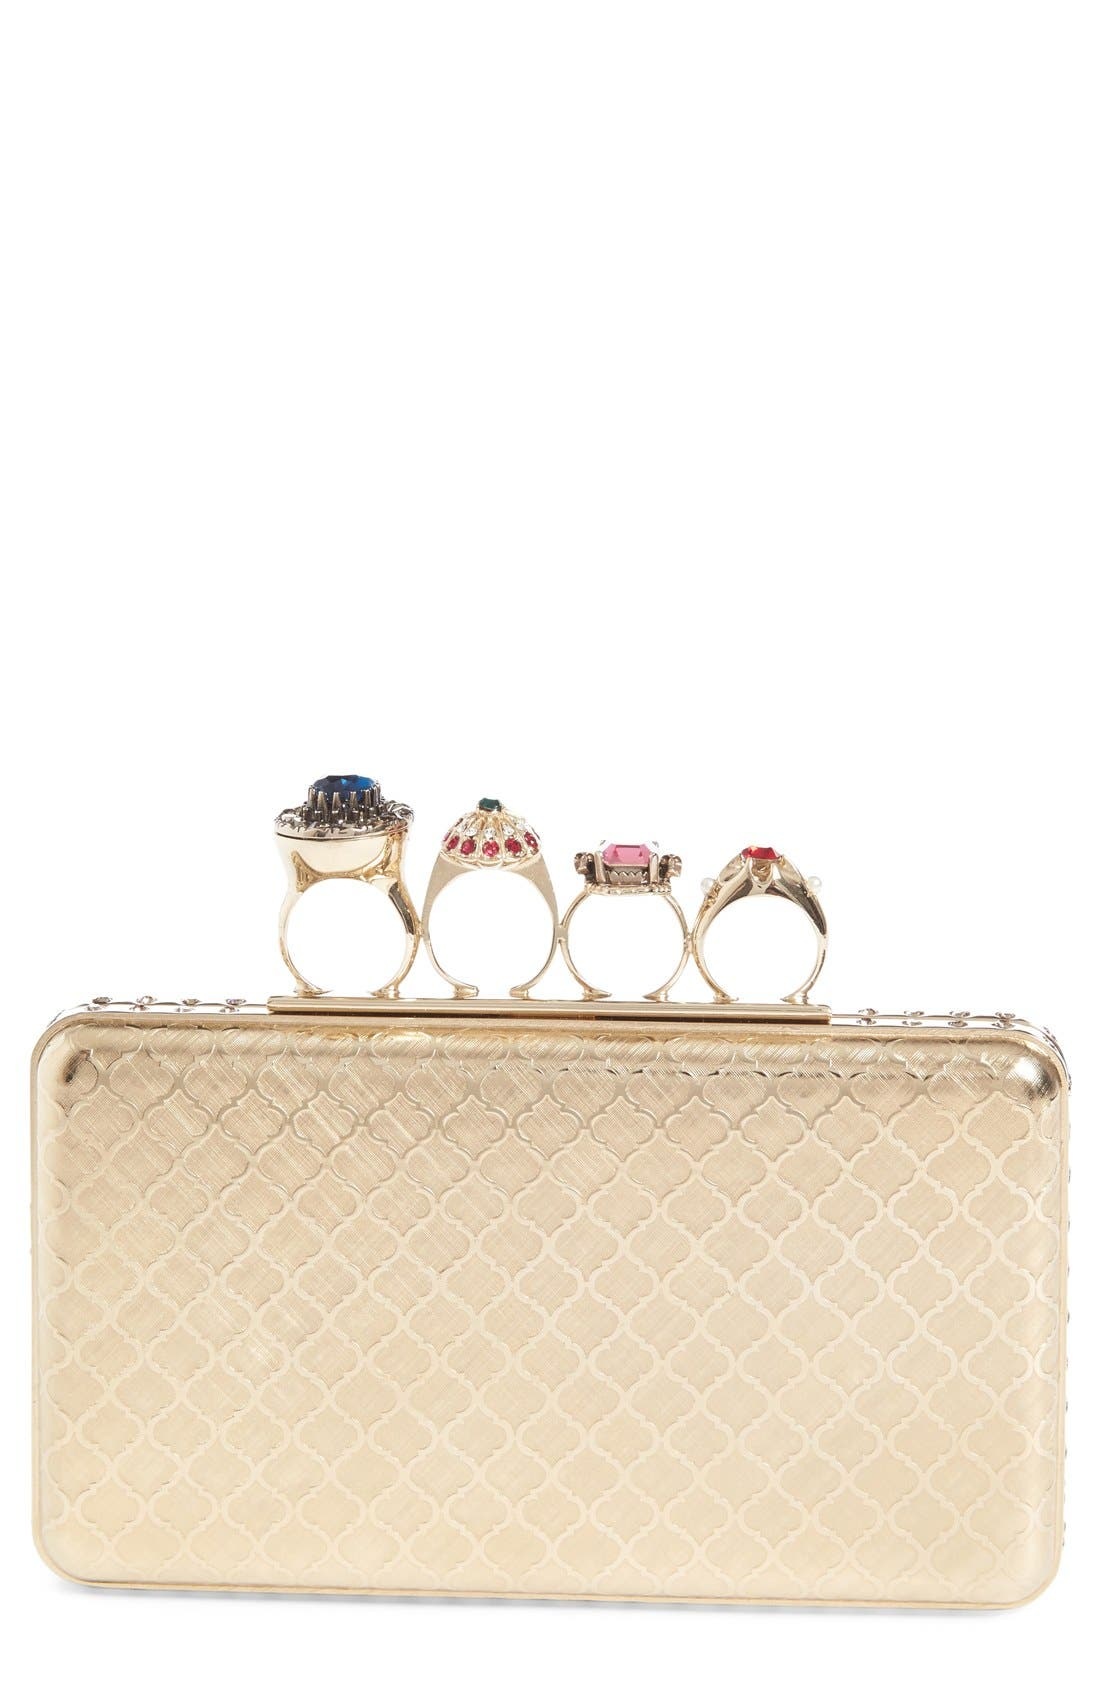 Main Image - Alexander McQueen Embellished Knuckle Clasp Box Clutch